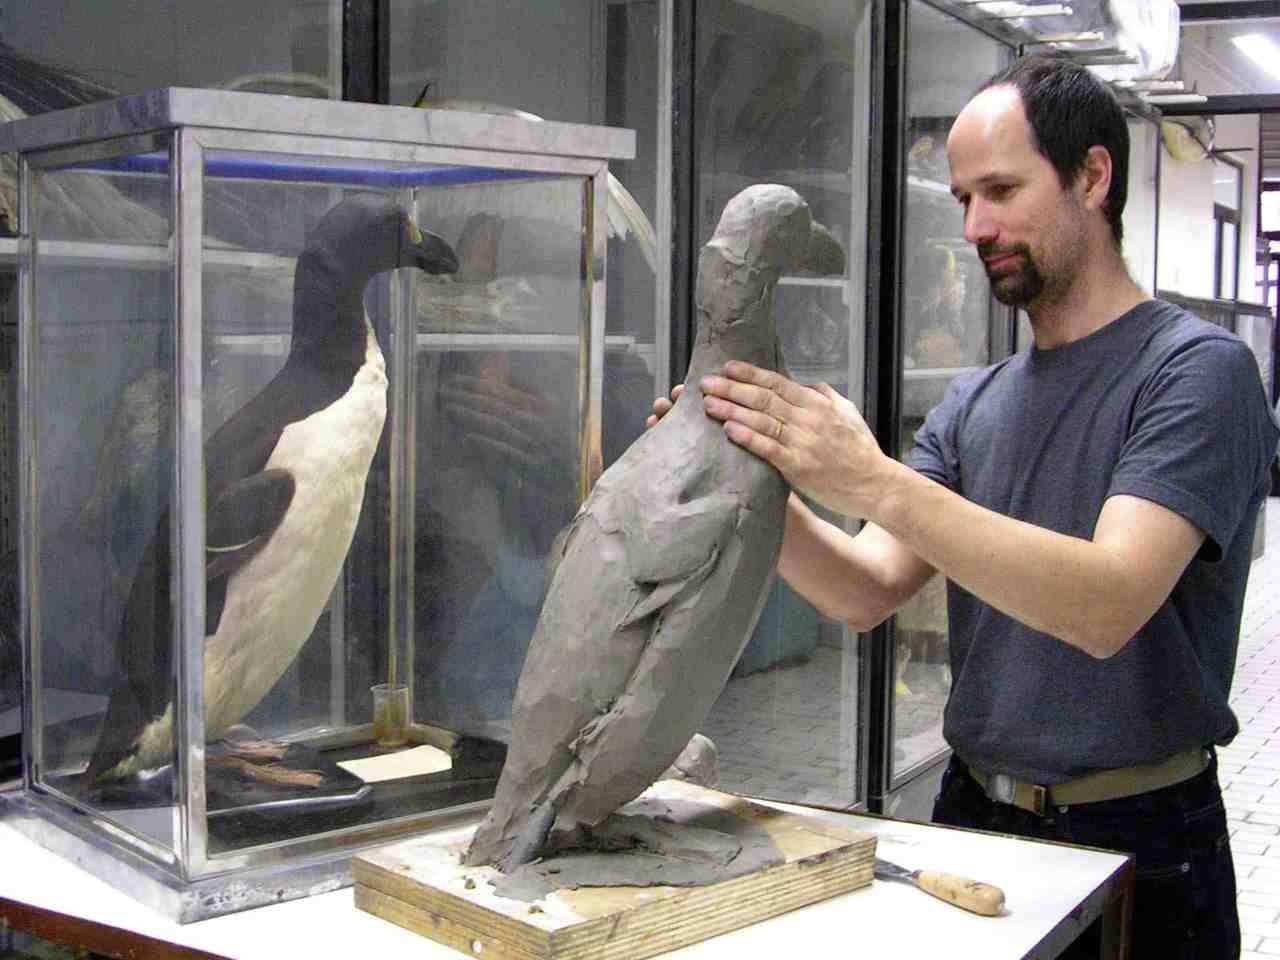 The Lost Bird Project Sculptor Todd McGrain with a Museum specimen of the Great Auk, which serves as a model.